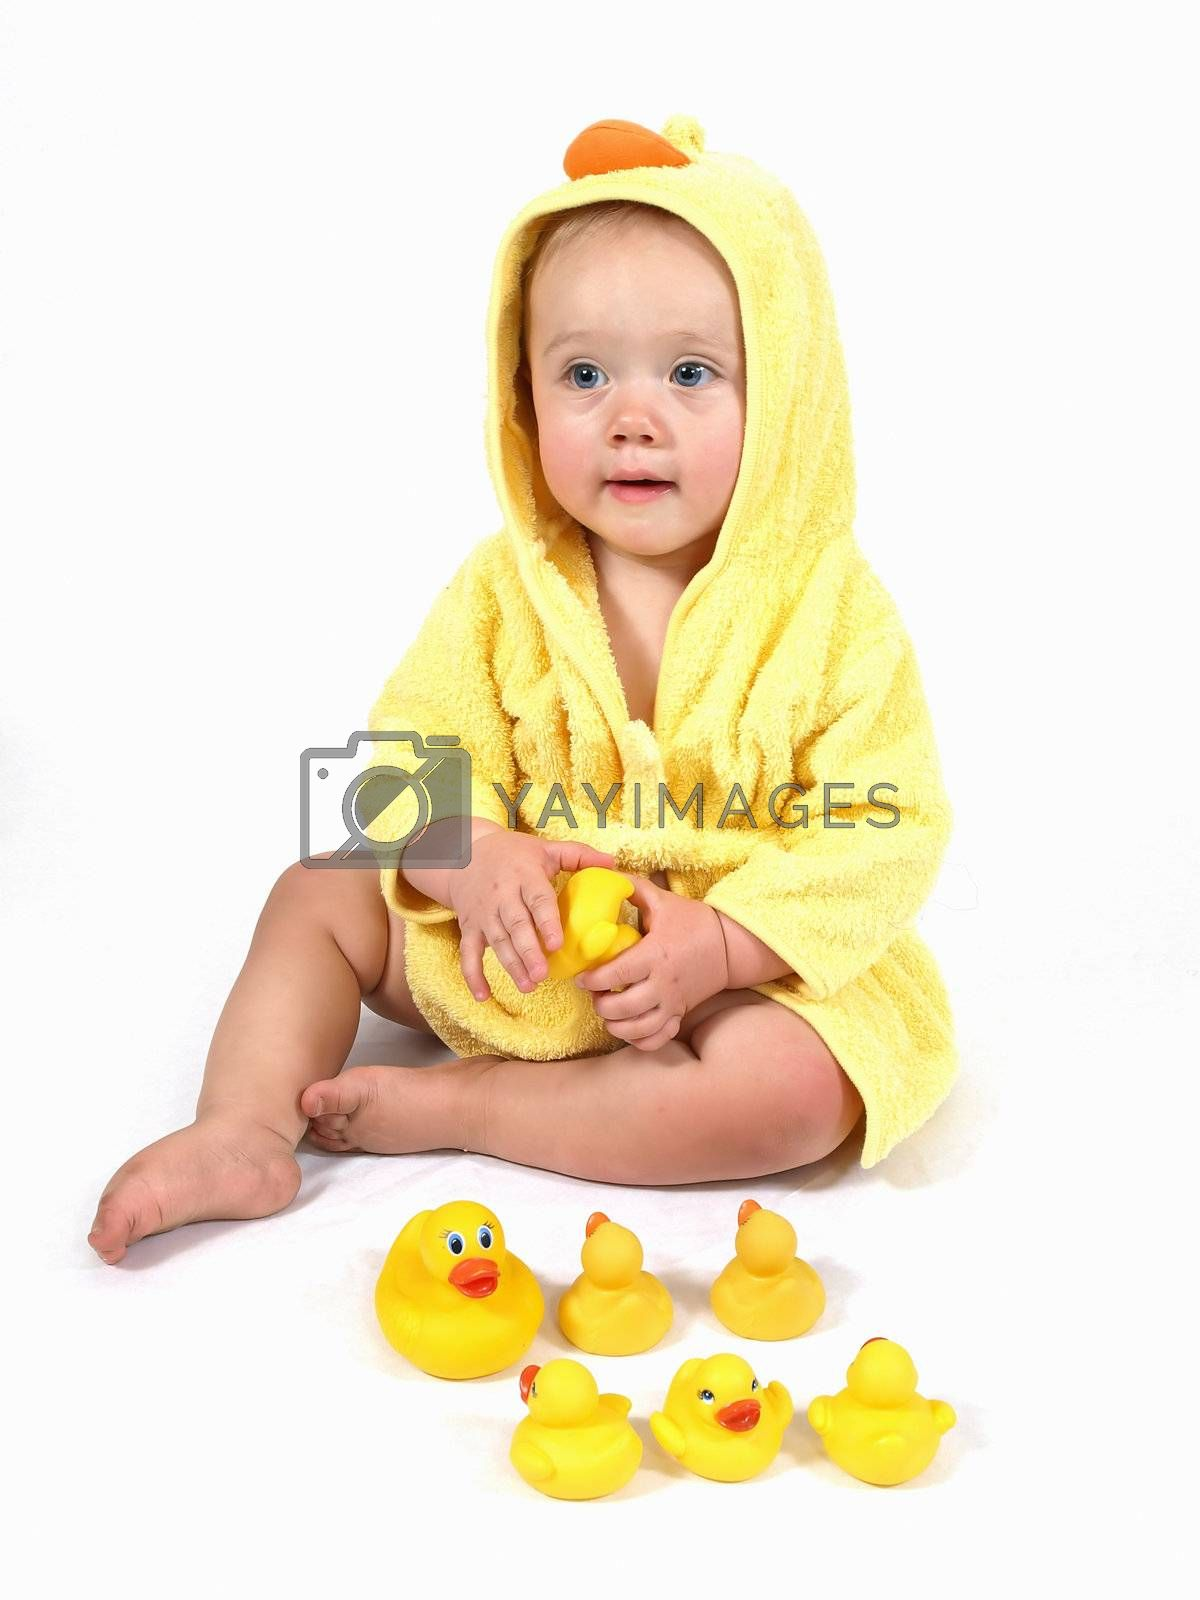 A female child wearing a yellow bathrobe plays with her rubber ducks.